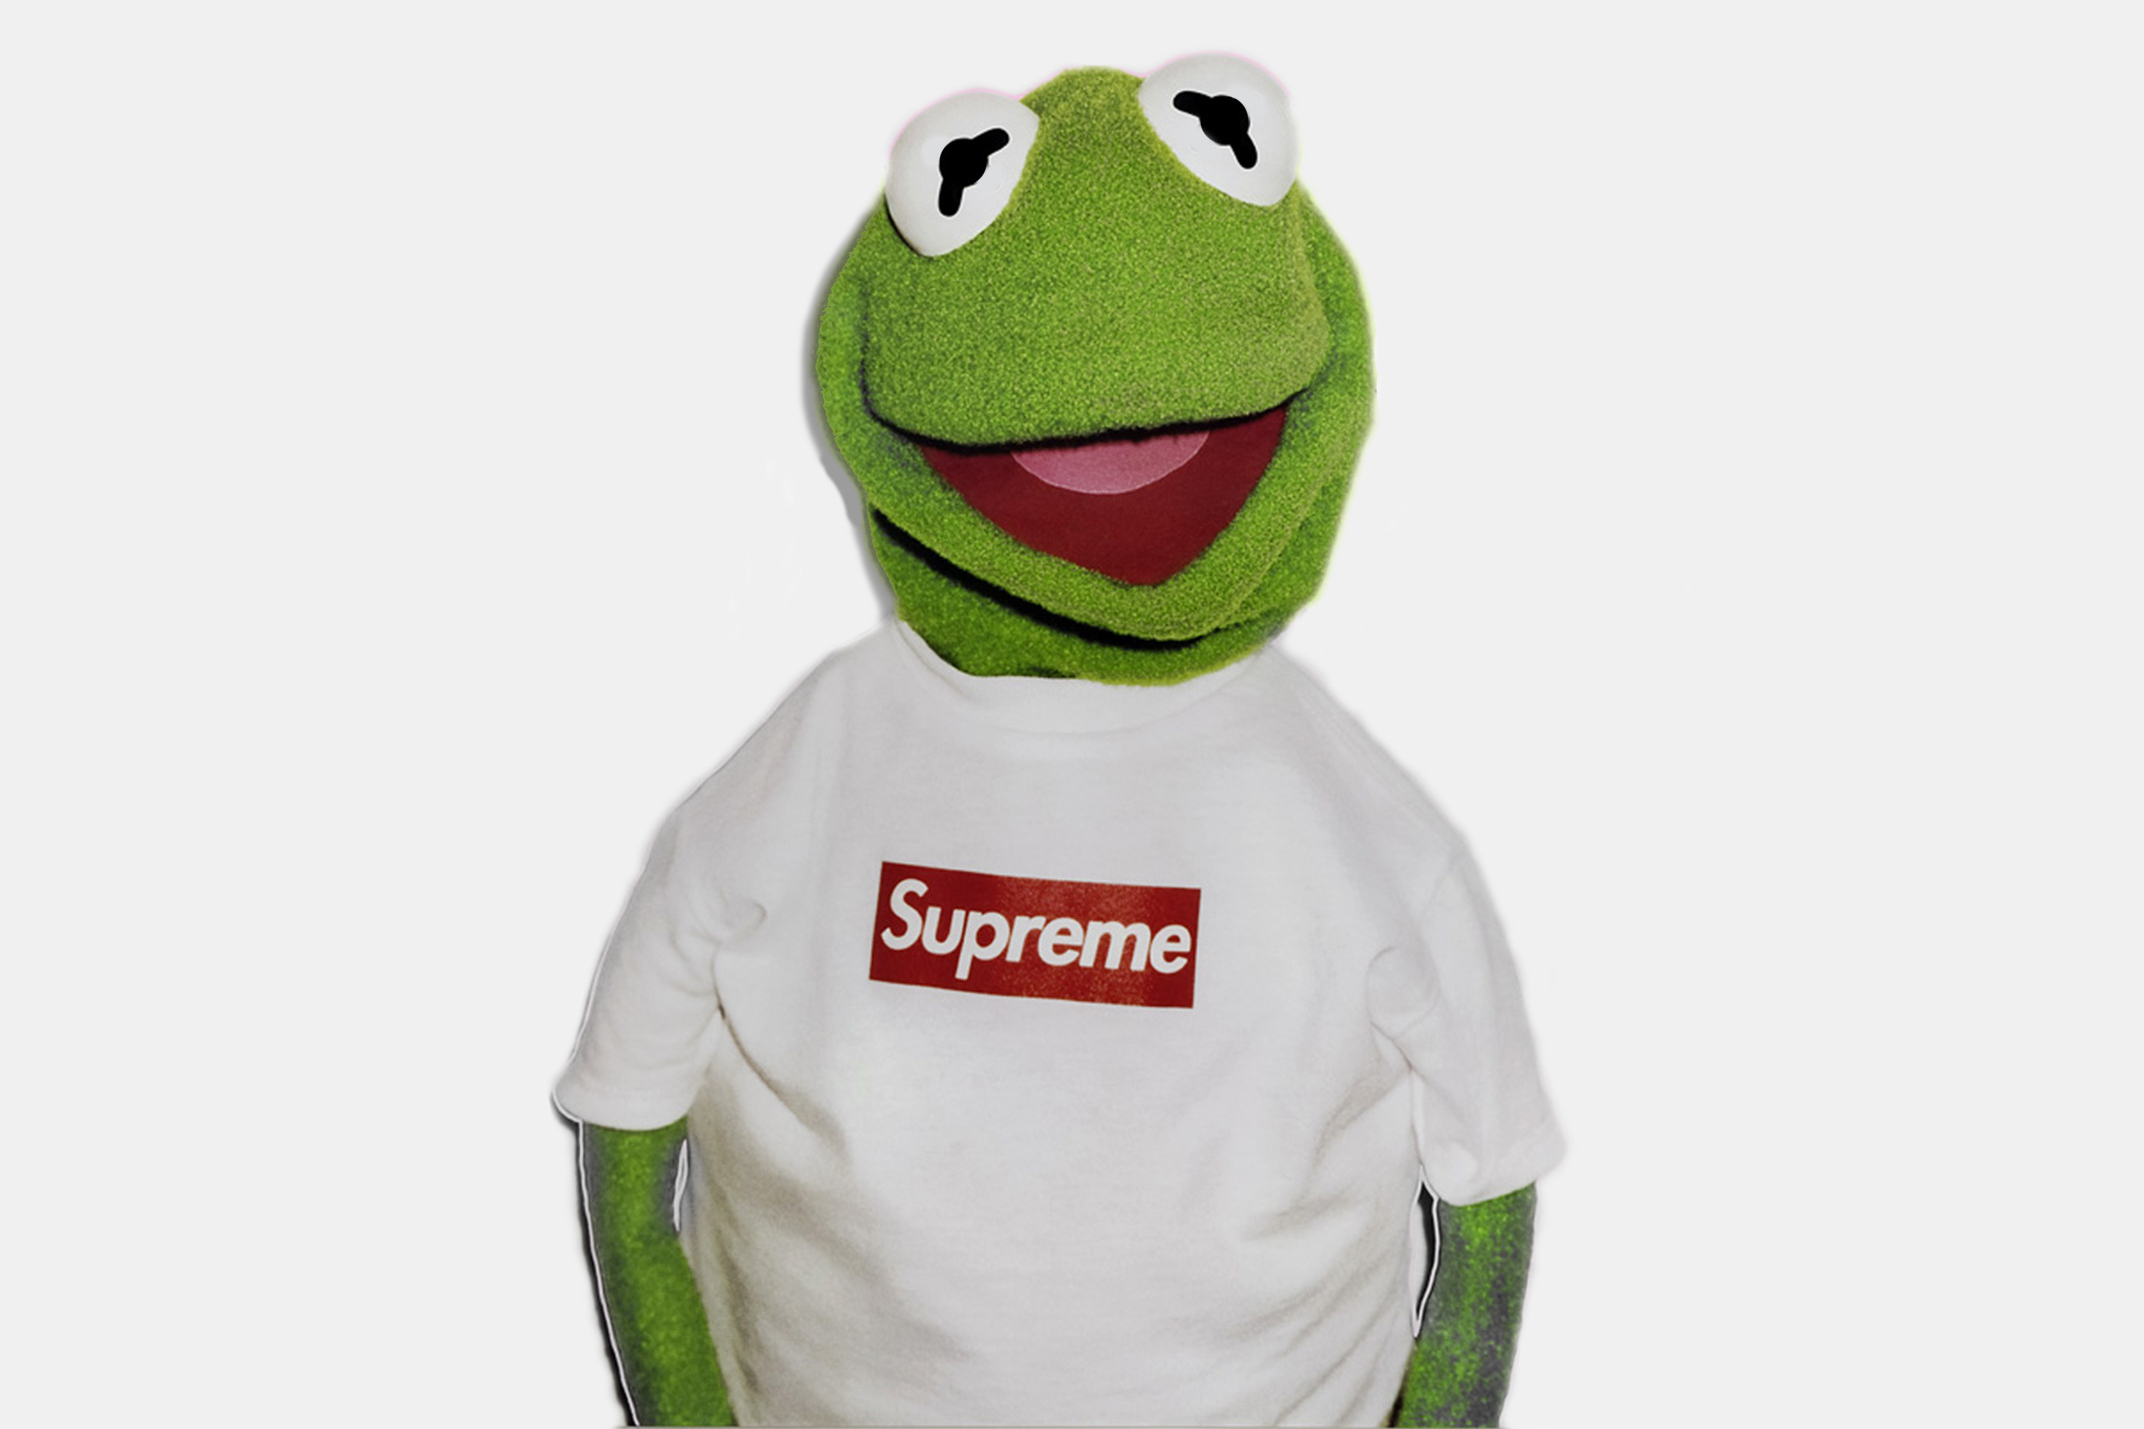 POLLS: Which Supreme Celebrity Campaign Is Your Favorite?